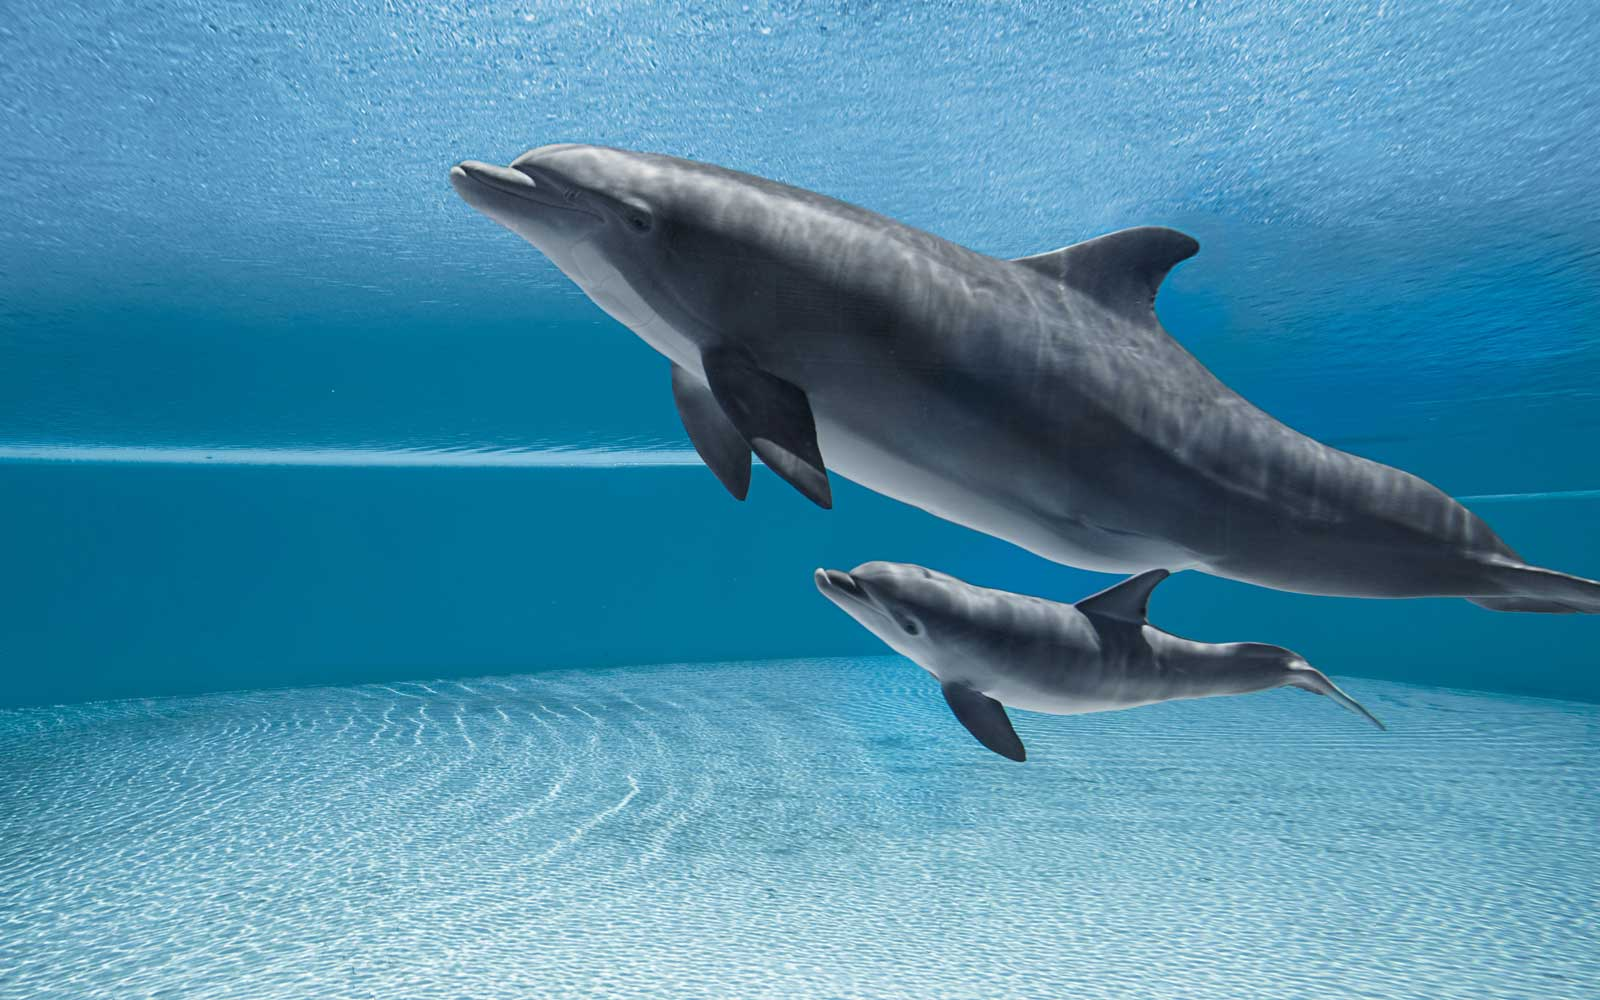 Dolphin pushes dead calf's body through Florida waters in heartbreaking video